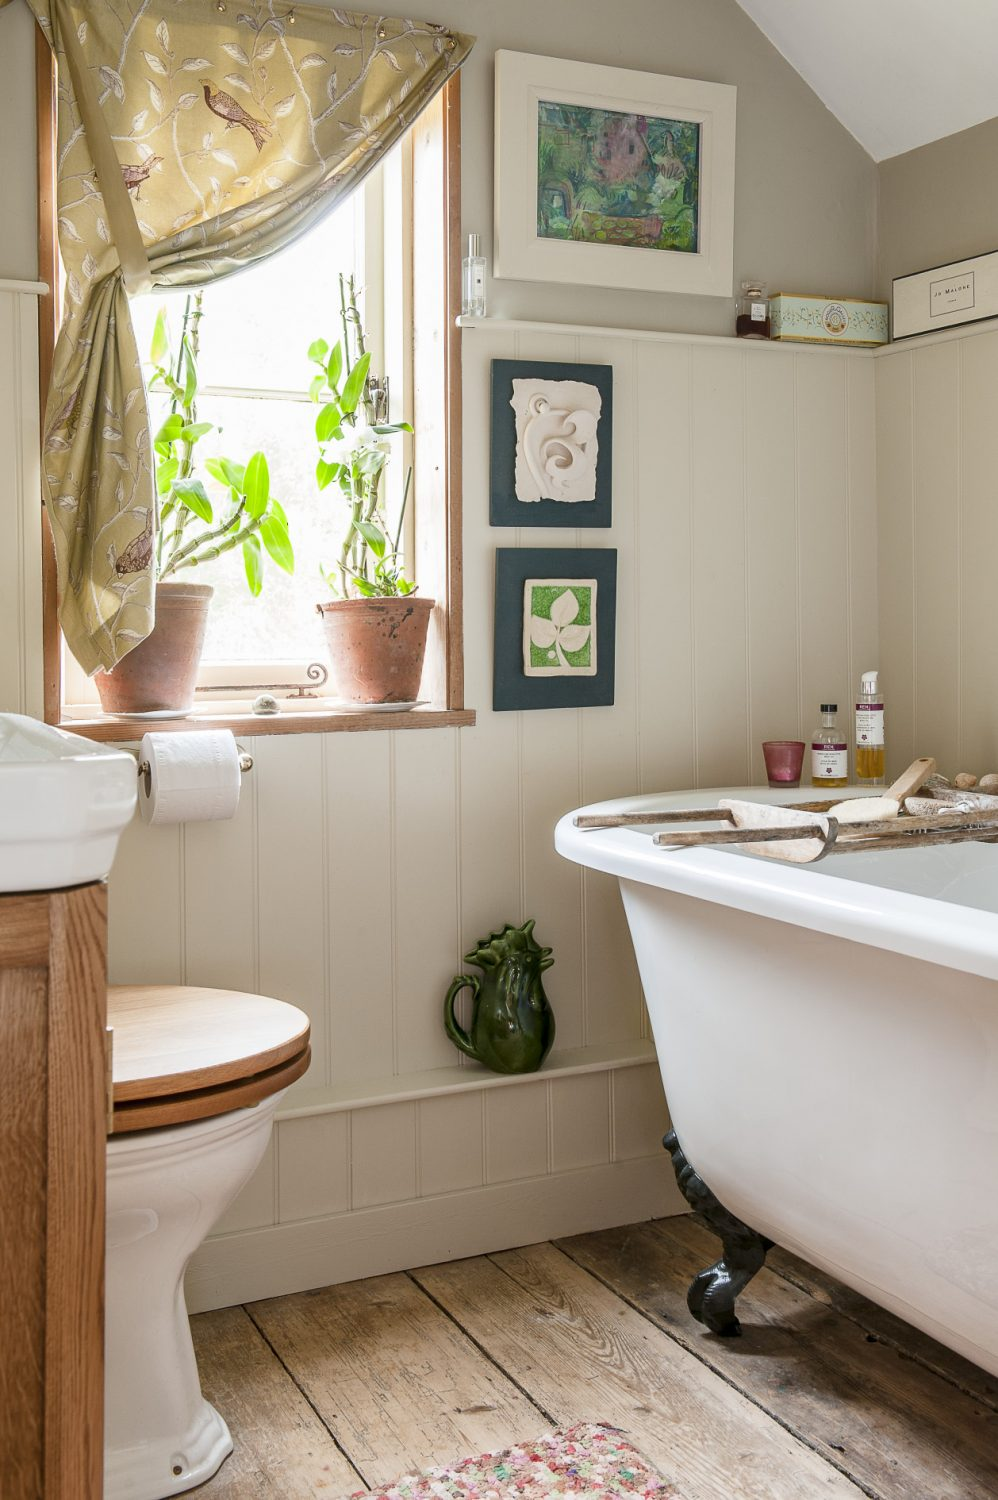 At one end of the landing, the first floor bathroom features an elegant roll-top bath